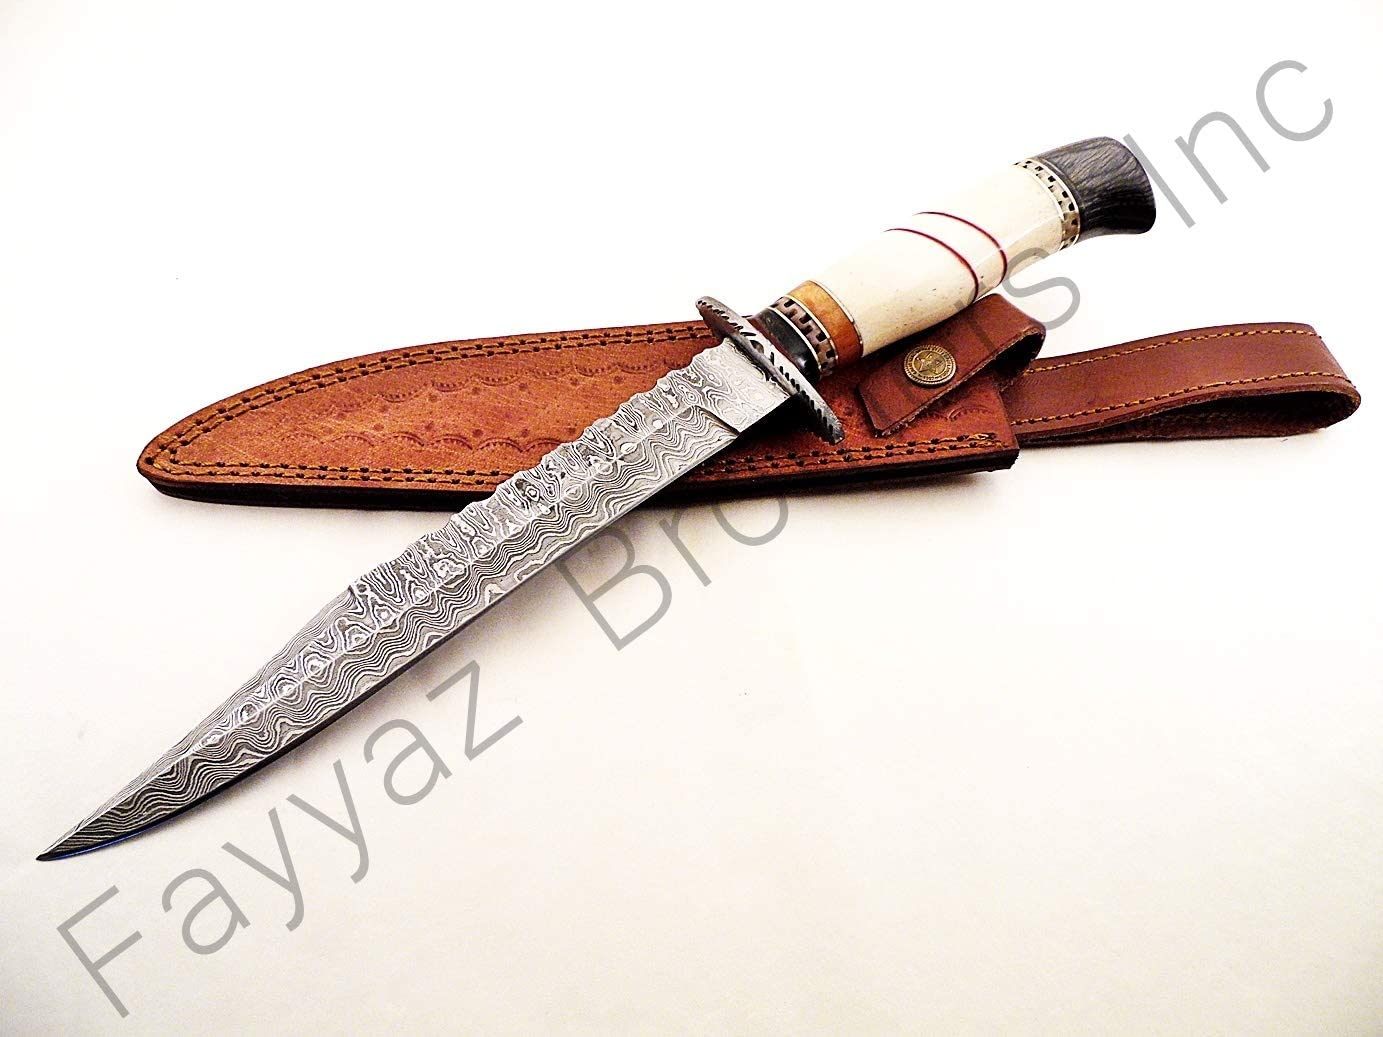 FAYYAZ BROTHERS Custom Hand Made Damascus Steel Hunting Knives Bowie Knife FBK-15666 and 15667